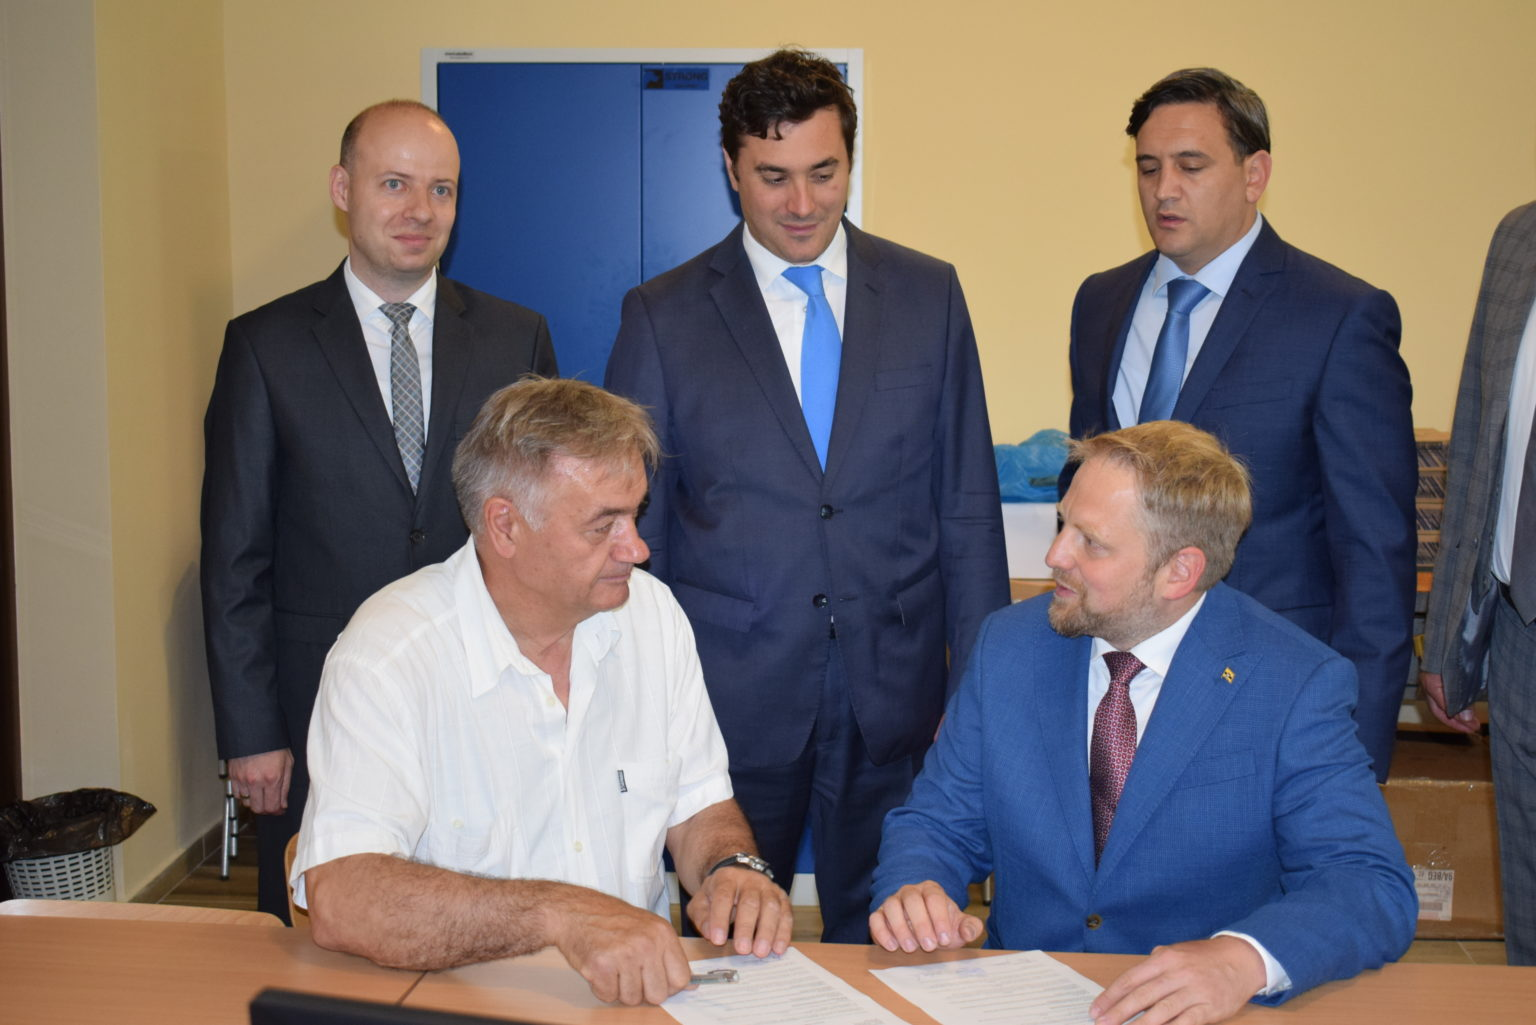 LIBERLAND BUILDS STRONG TIES WITH VOJVODINA PROVINCE Apatin Free Trade Zone Chamber of Commerce 2